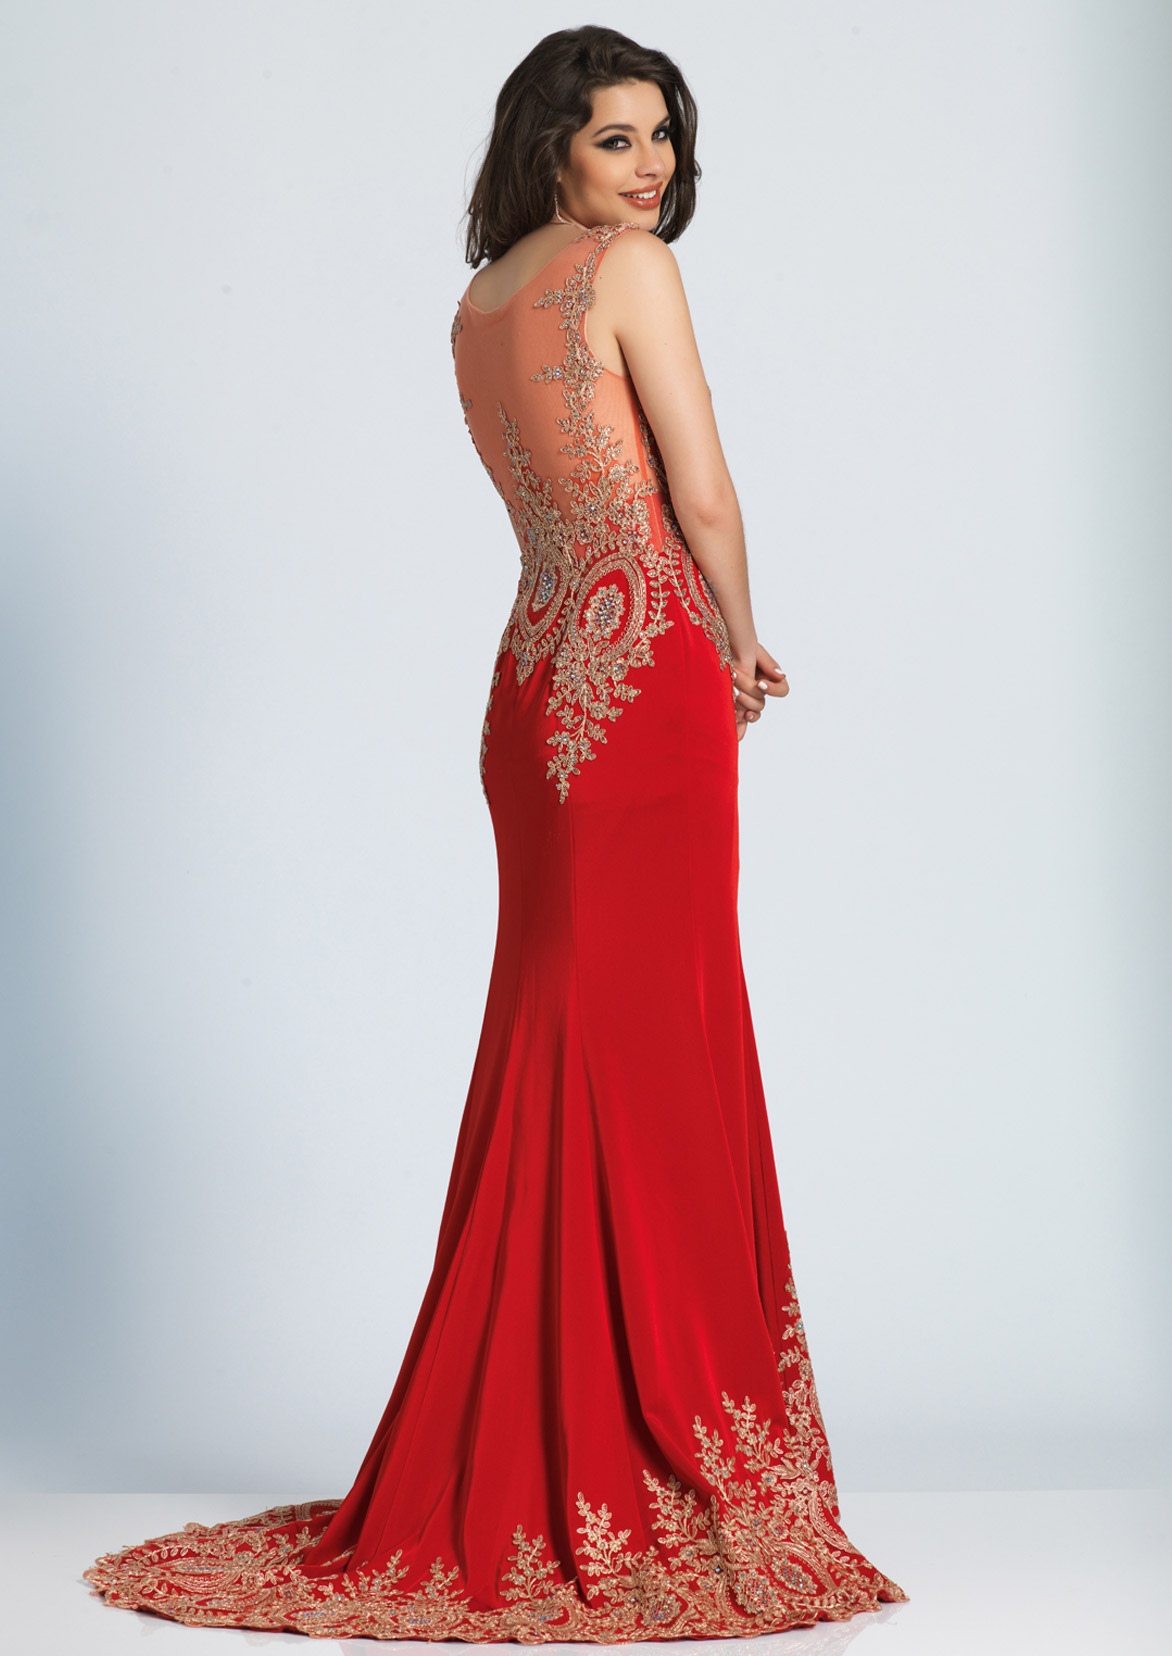 Fancy Strapless Short Prom Dress By Dave & Johnny Motif - Wedding ...